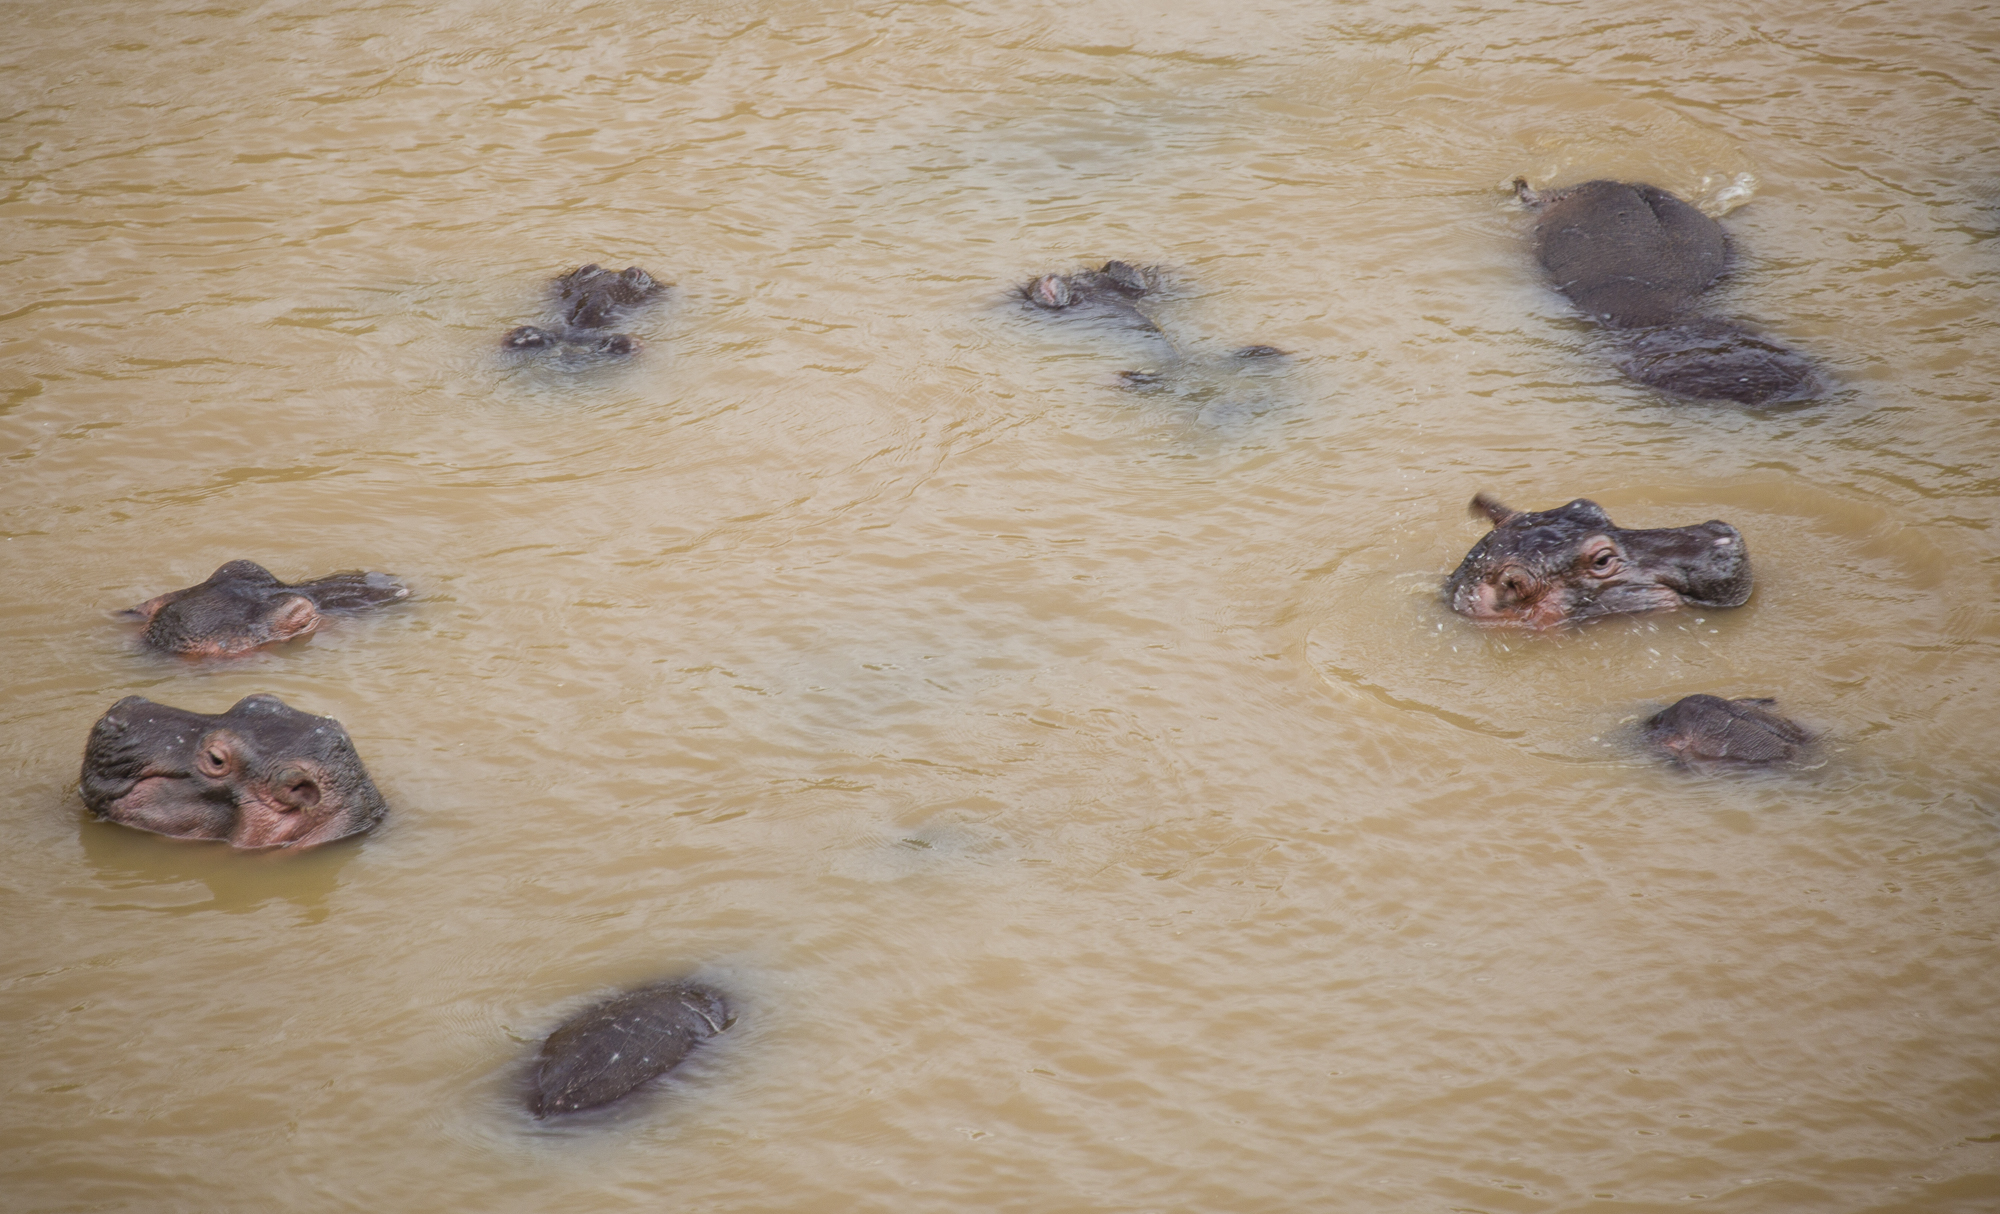 A group of hippopotamuses in the Mara River, in Kenya. These animals spend their days in the cool water and only come out of the river to feed at night.